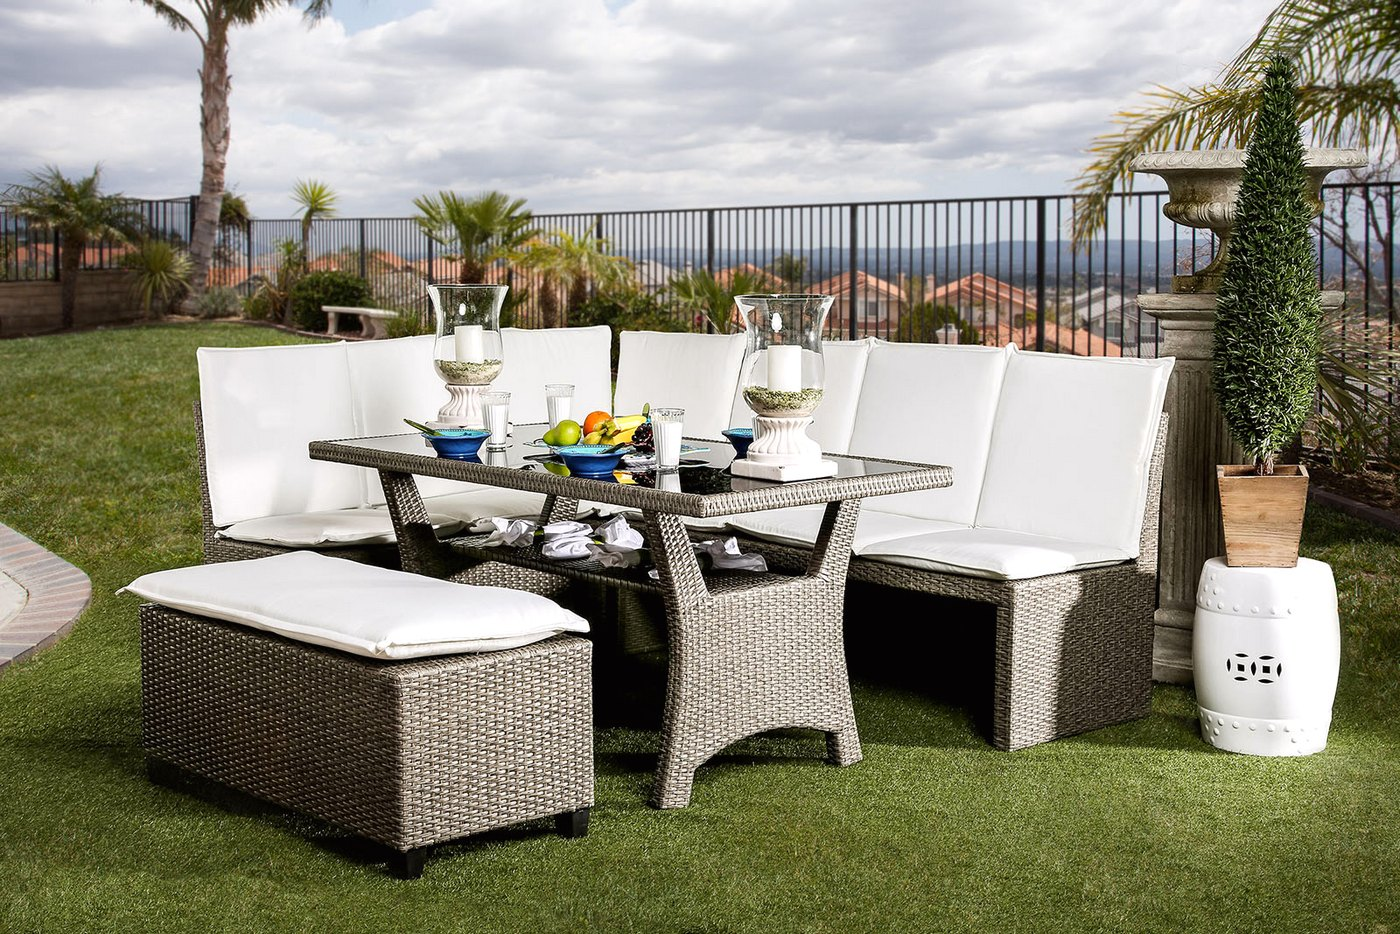 casual outdoor patio sectional dining set in white grey wicker